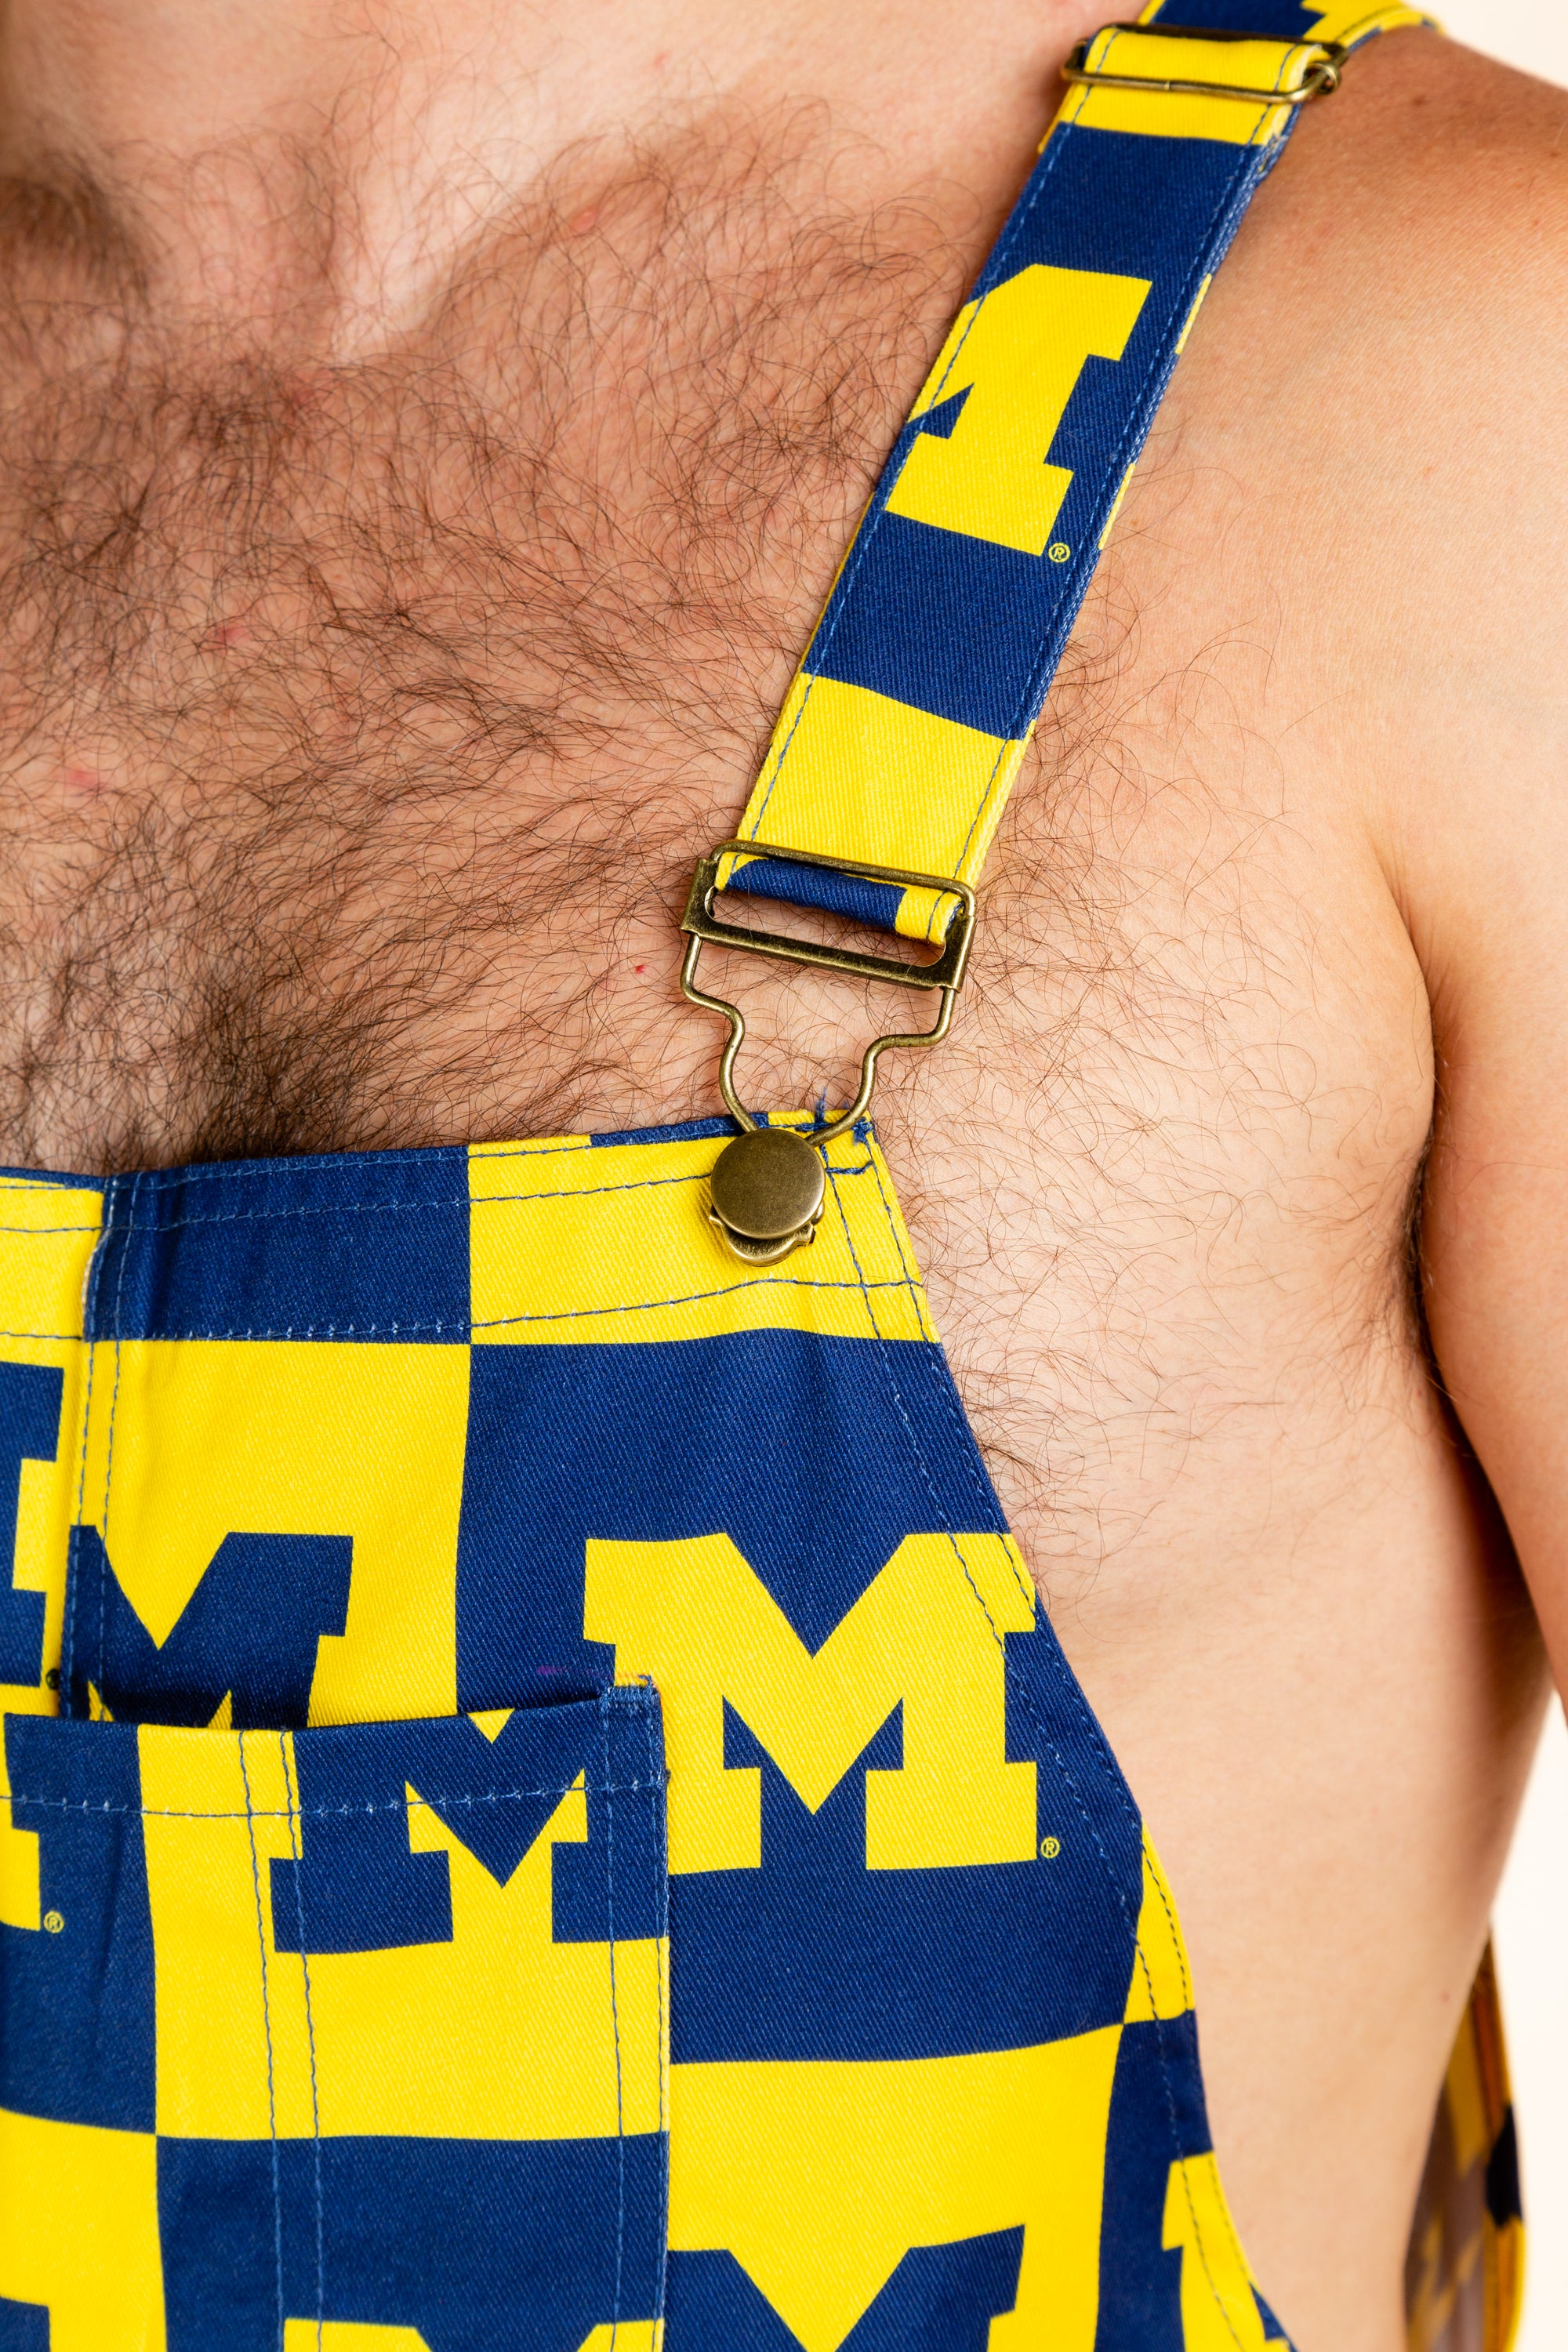 The wolverine fight college football overalls